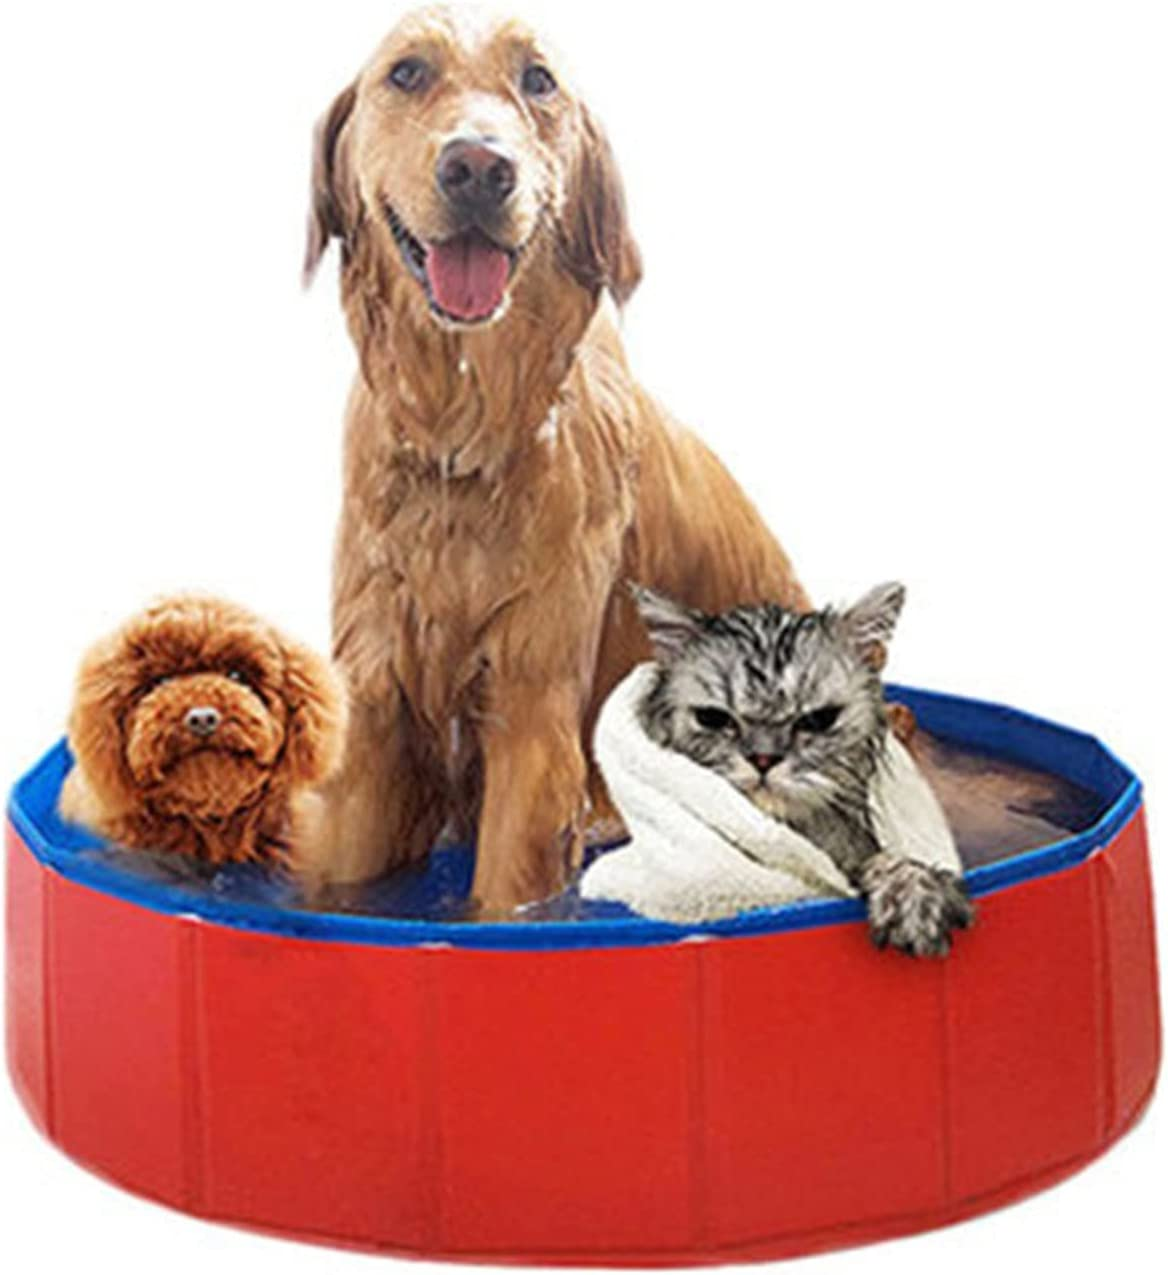 Dog Pool,Pet Pool Cheap mail order shopping Tub,Foldable supreme Bathtub,Suitable Indoor for